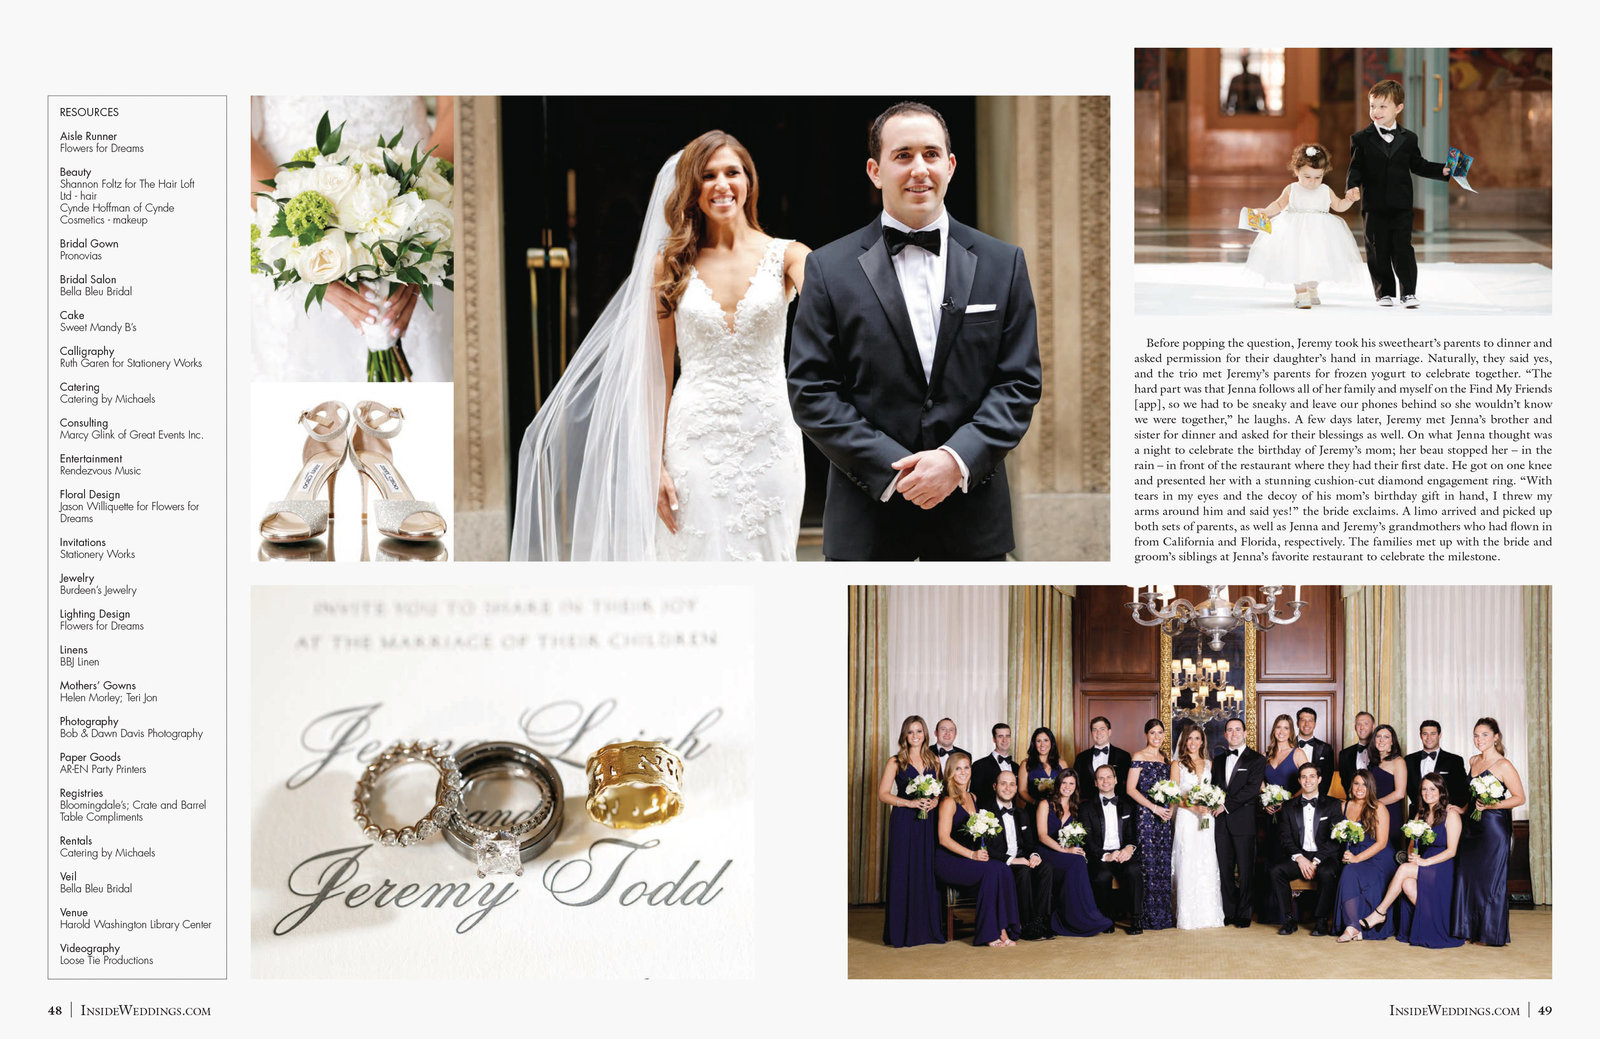 Inside Weddings_Summer 2019 - Pages 48-49